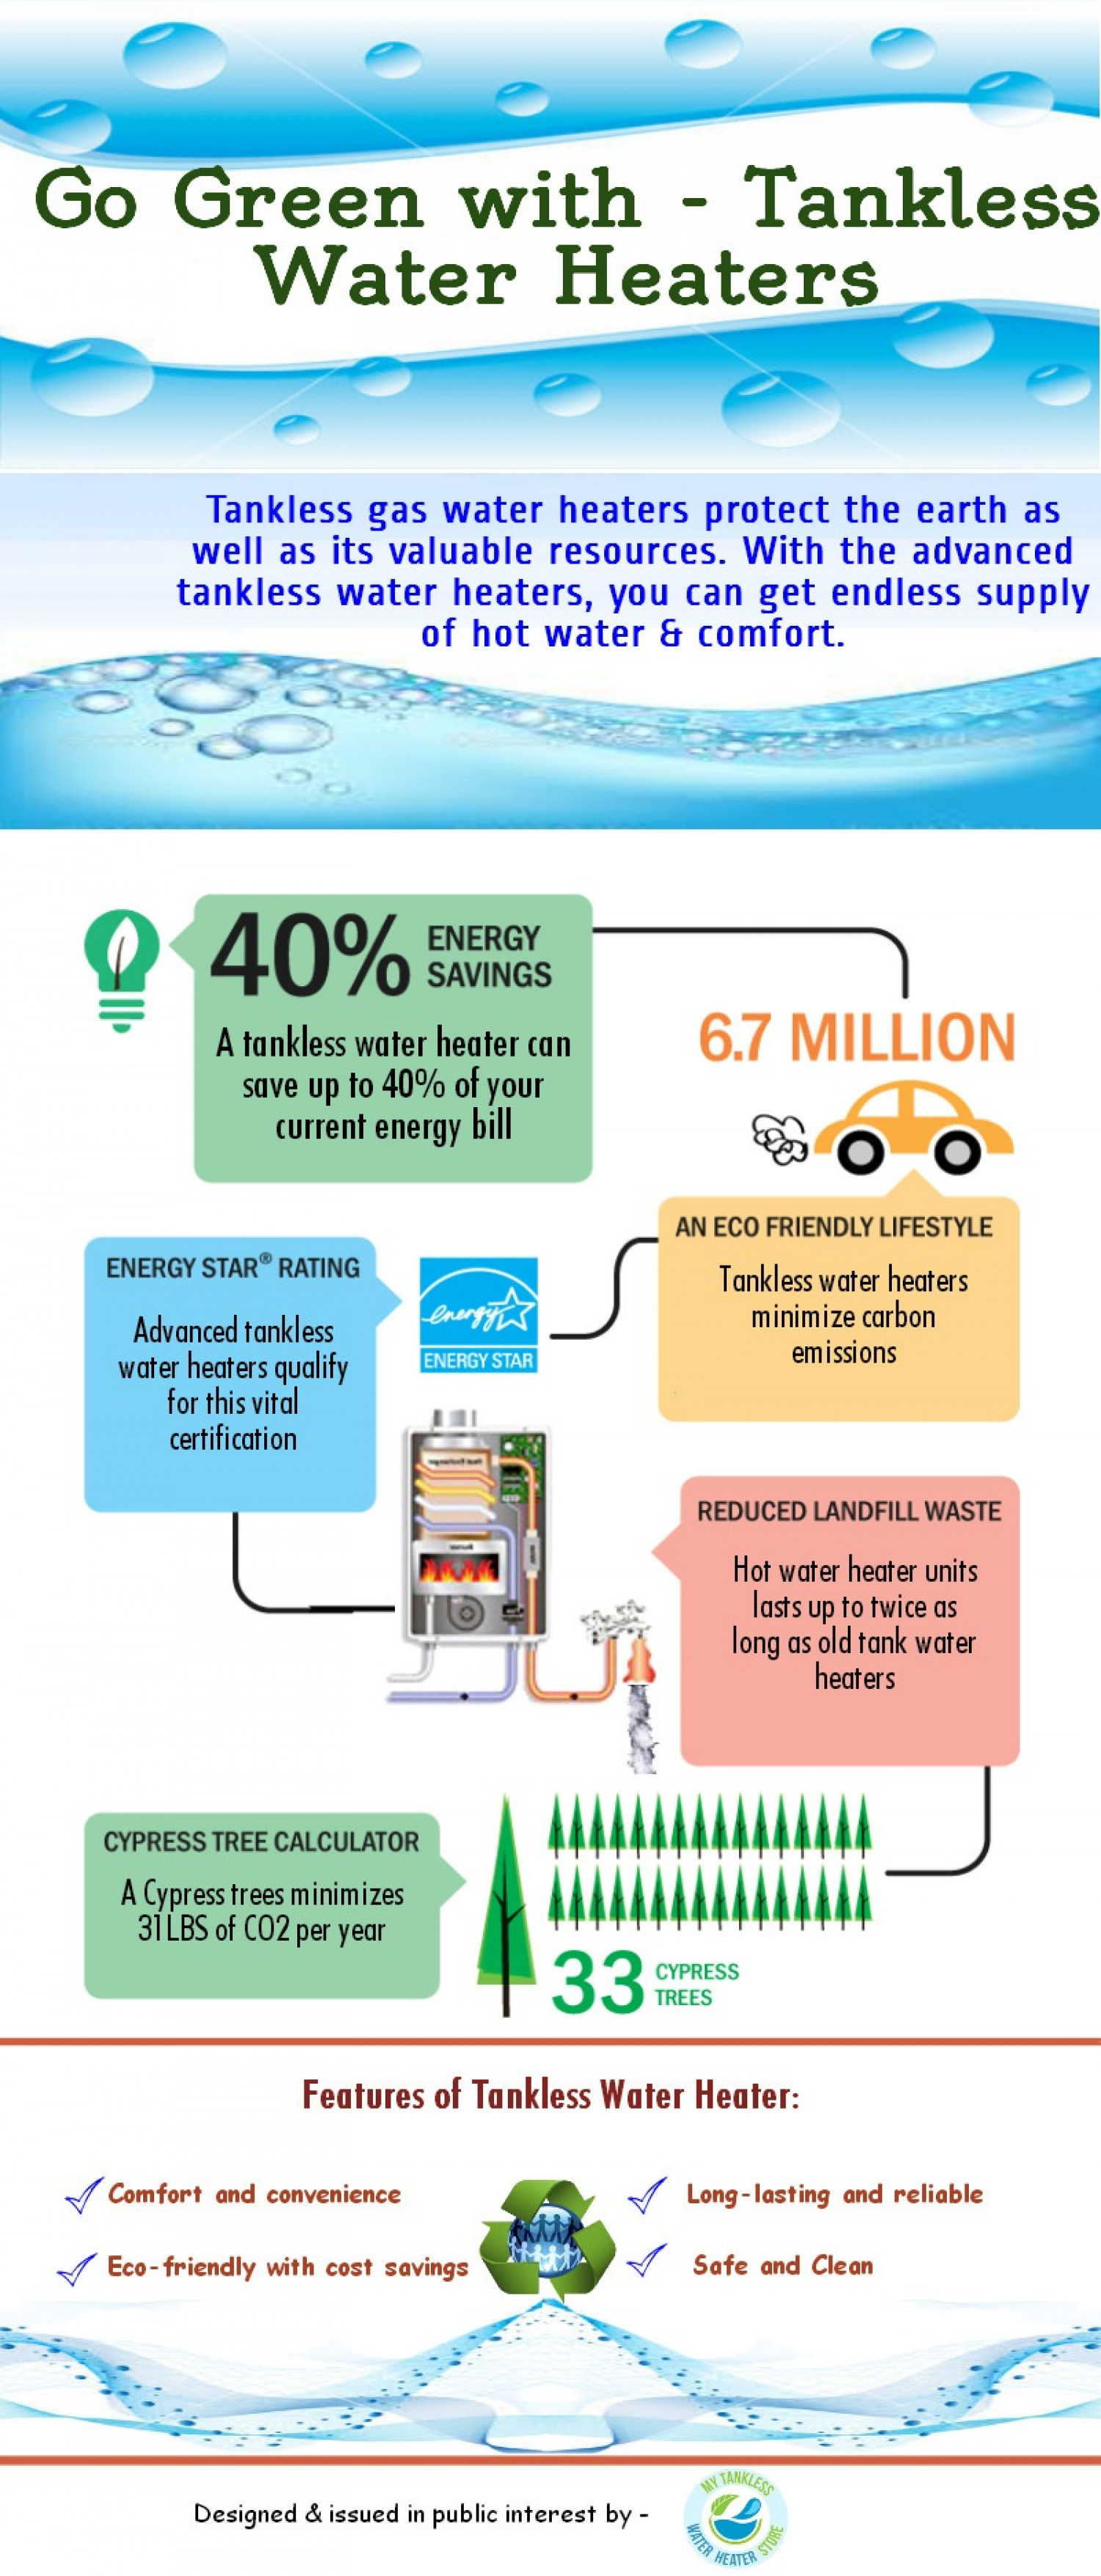 Go Green with - Tankless Water Heaters Infographic